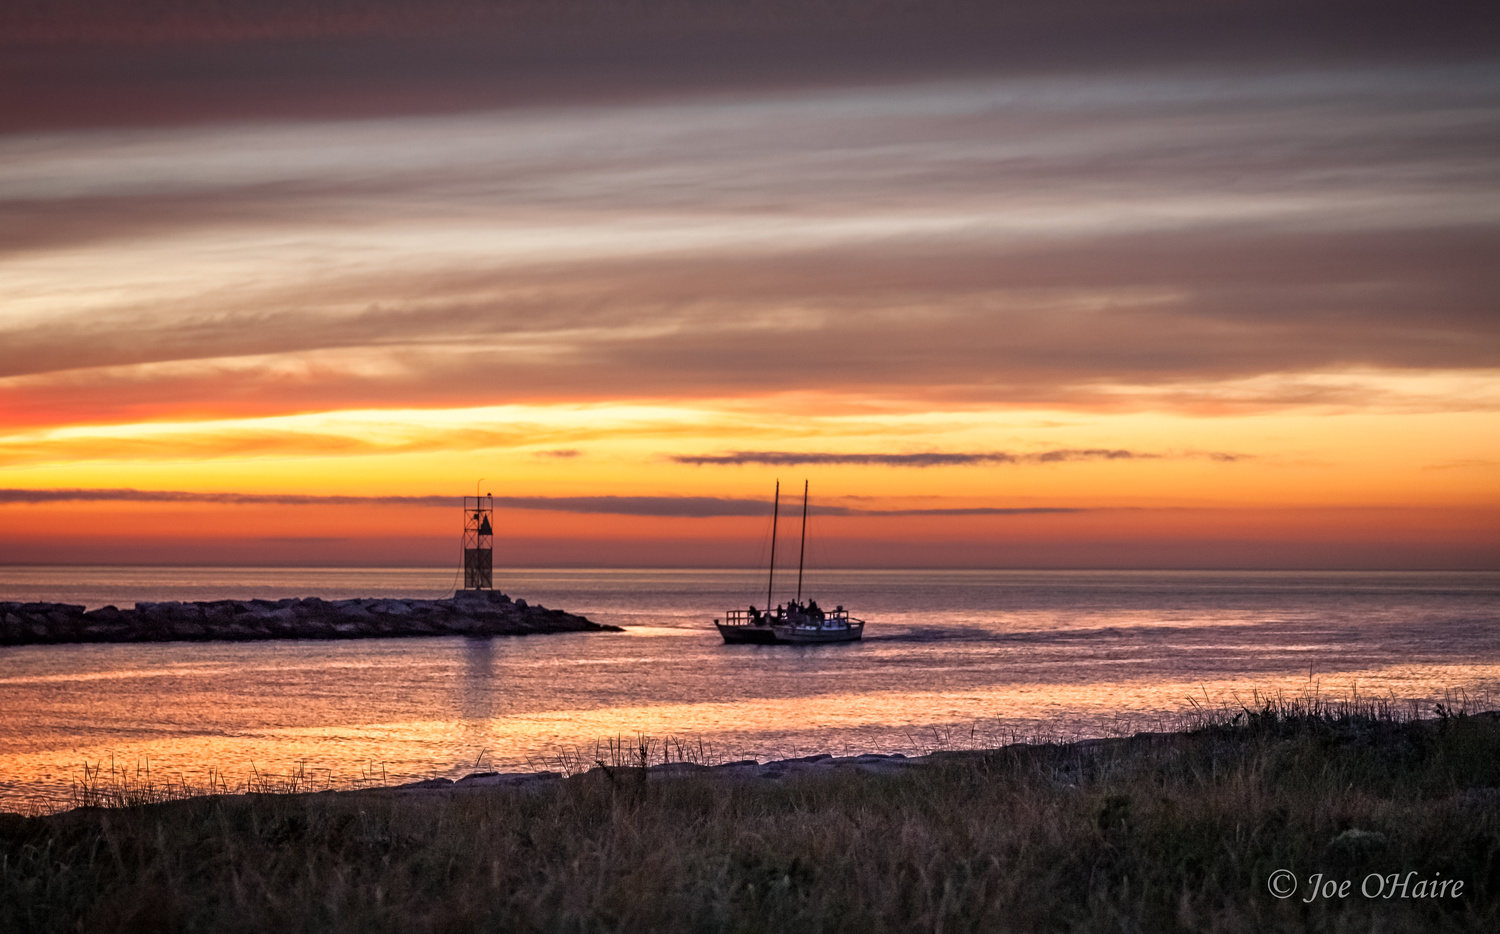 OffShore by Joe OHaire